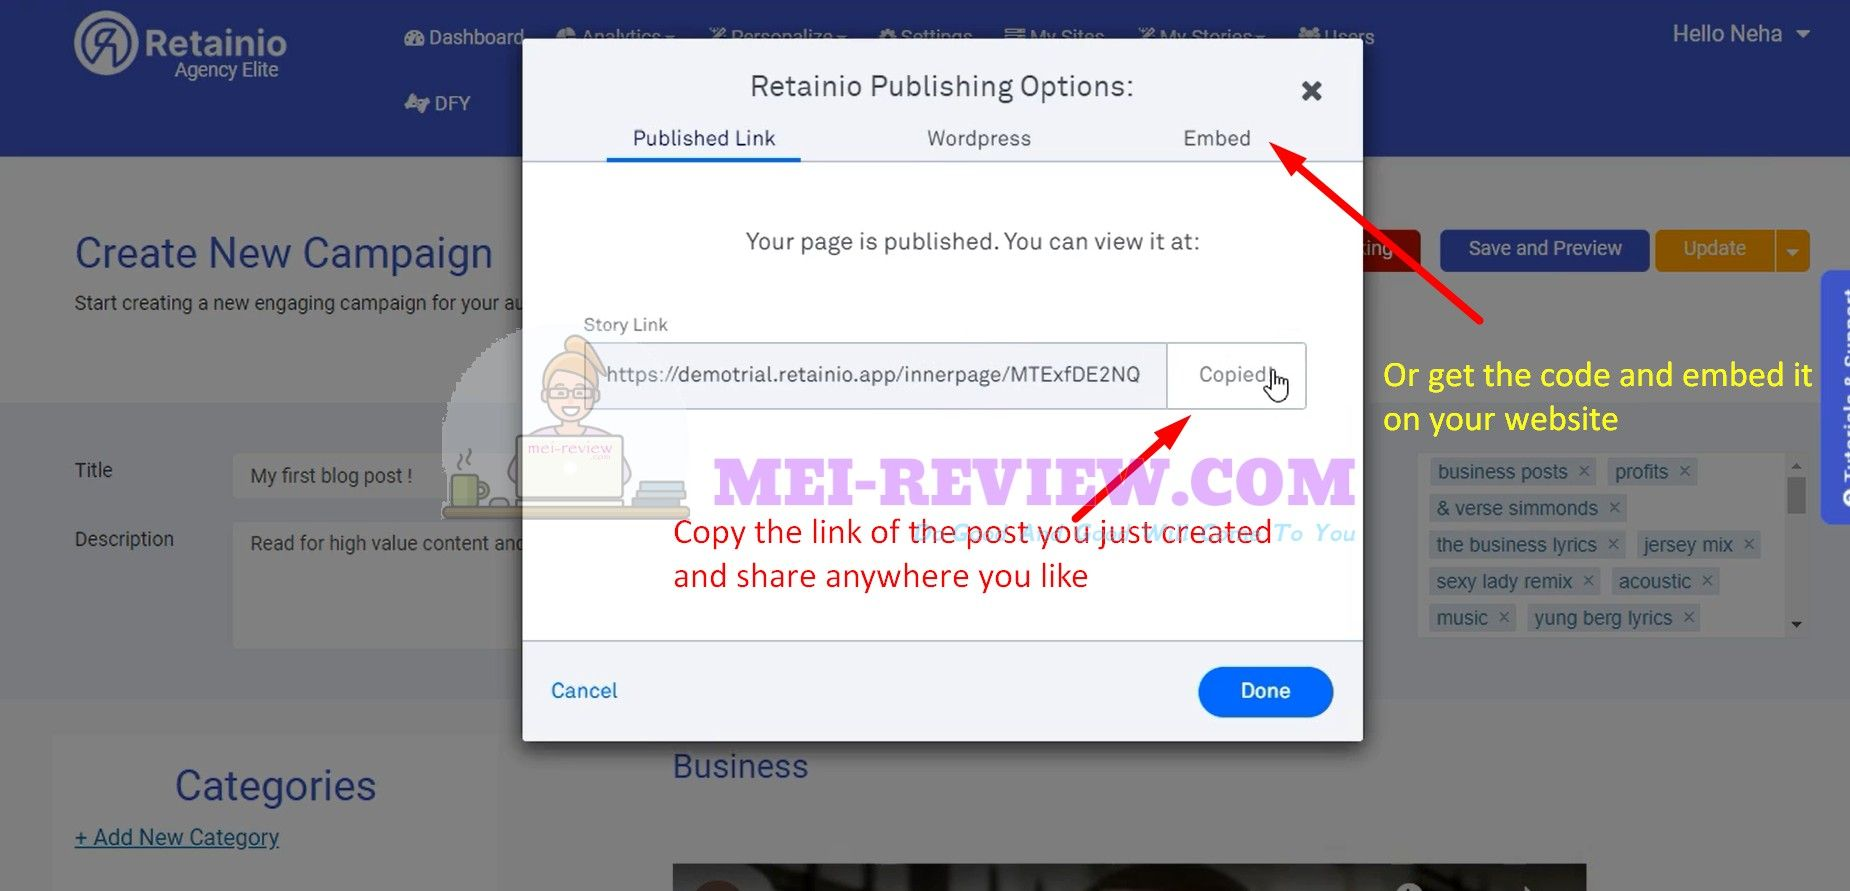 Retainio-Publish